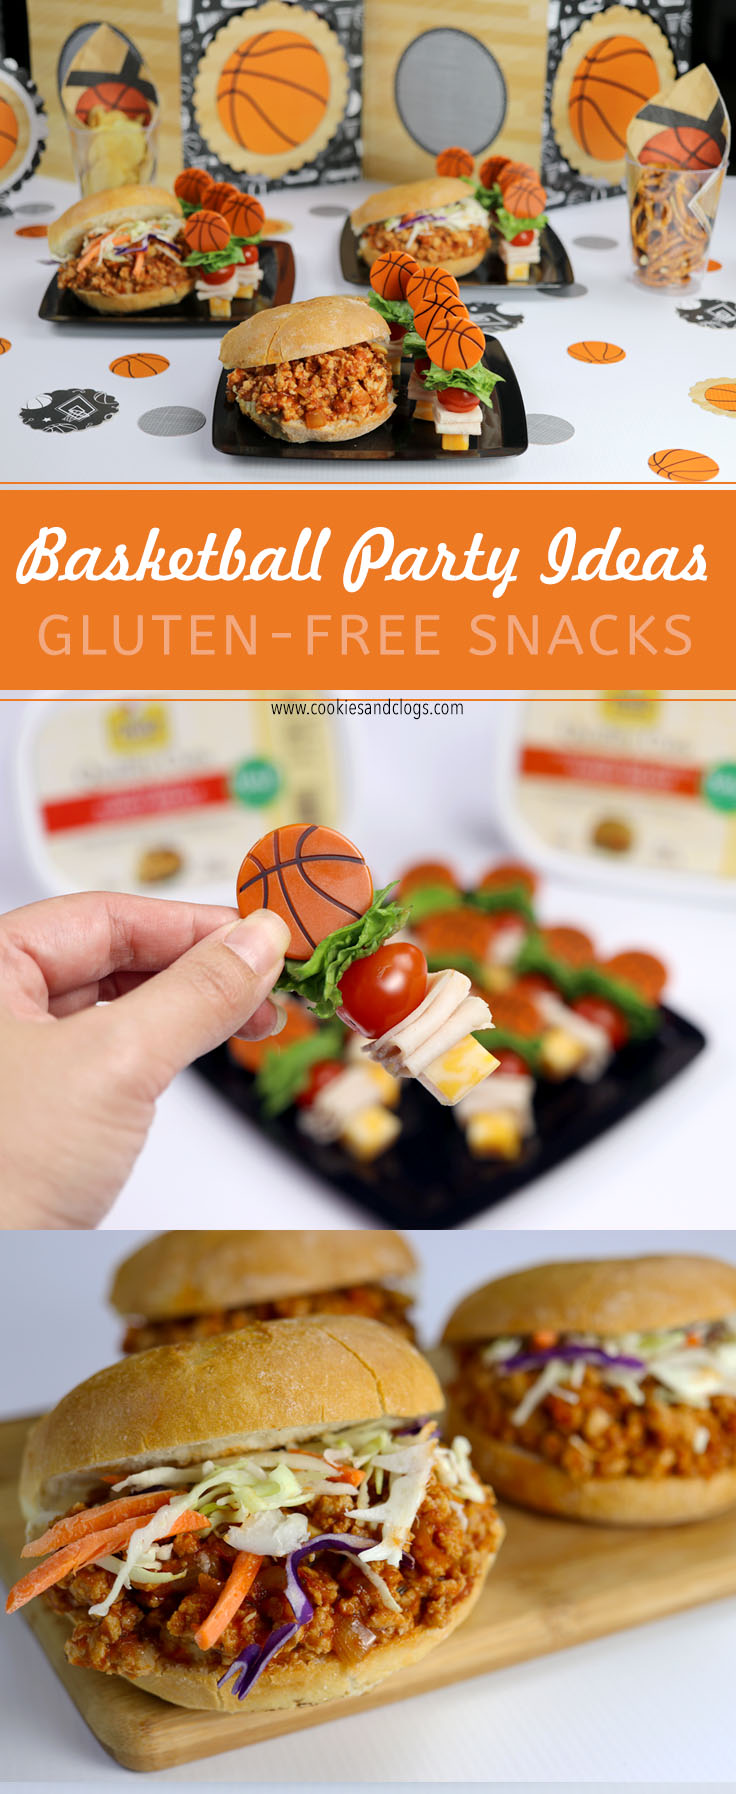 March Madness College Basketball Party Snack Ideas & Game Day Decorations — Gluten Free Turkey Sloppy Joes and Lunchmeat Skewers #MarchMadness #Basketball #PartyIdeas #GlutenFree